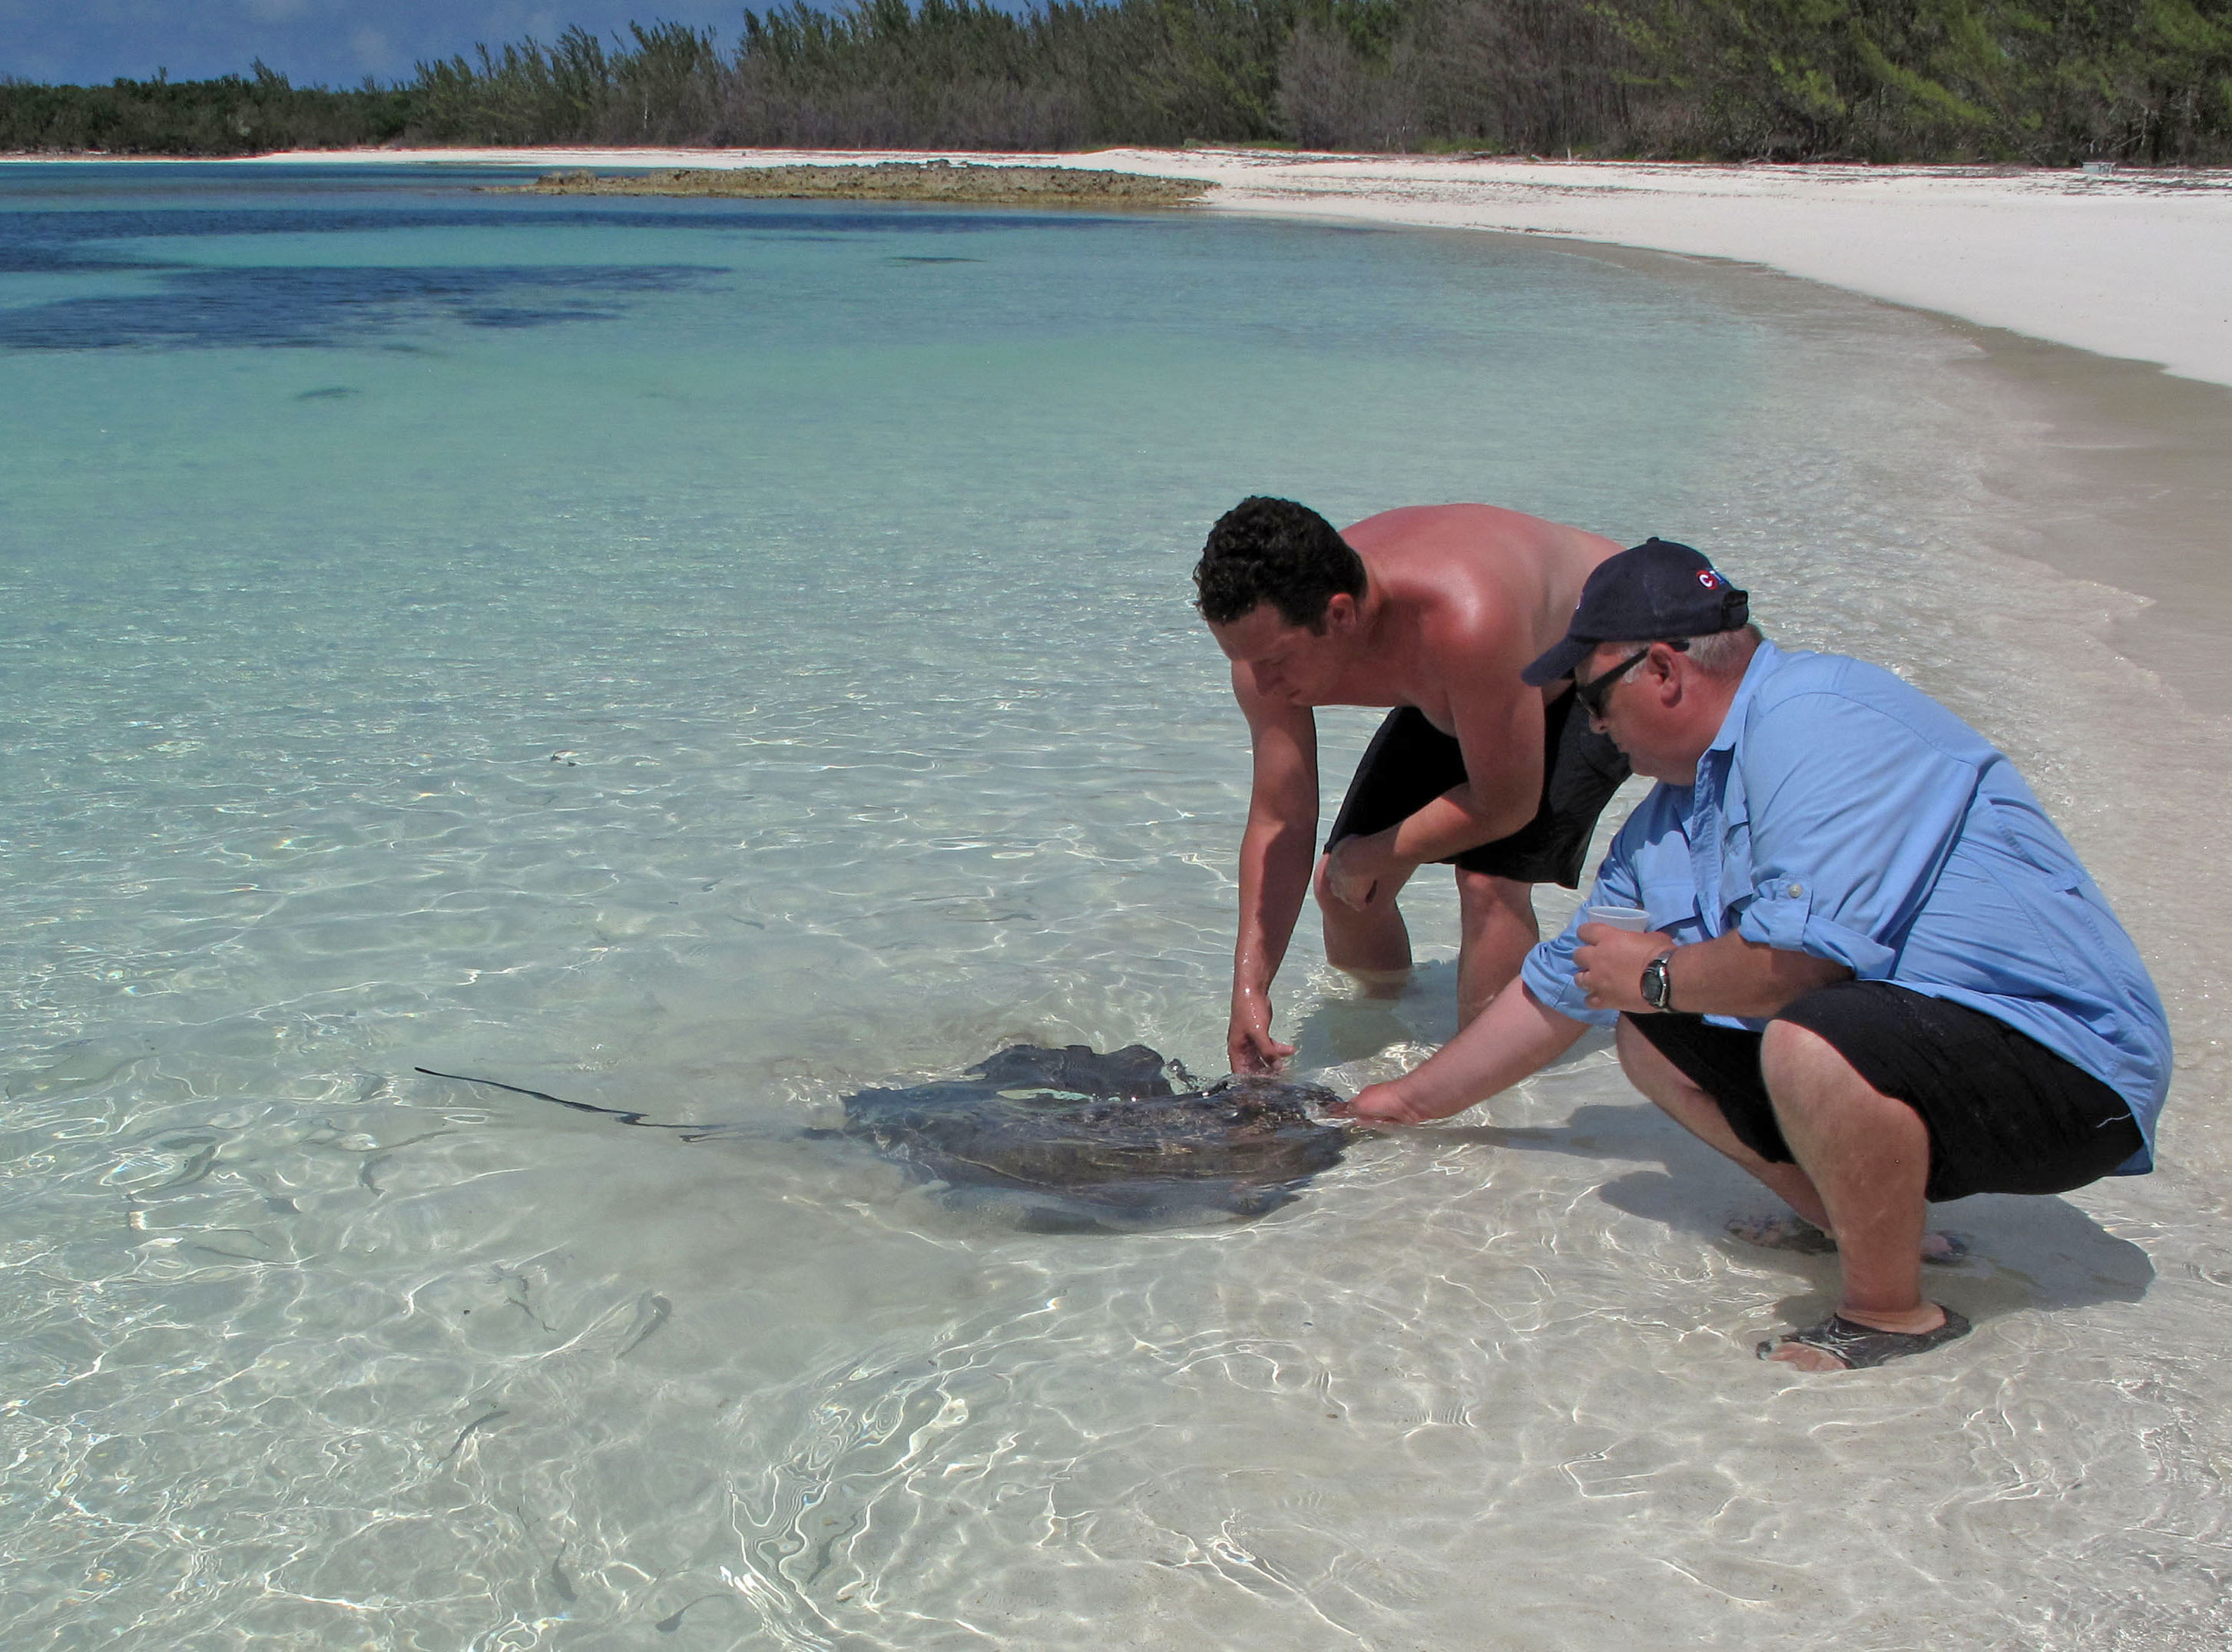 bahamas, abaco, green turtle cay, new plymouth, lincoln jones, sting ray